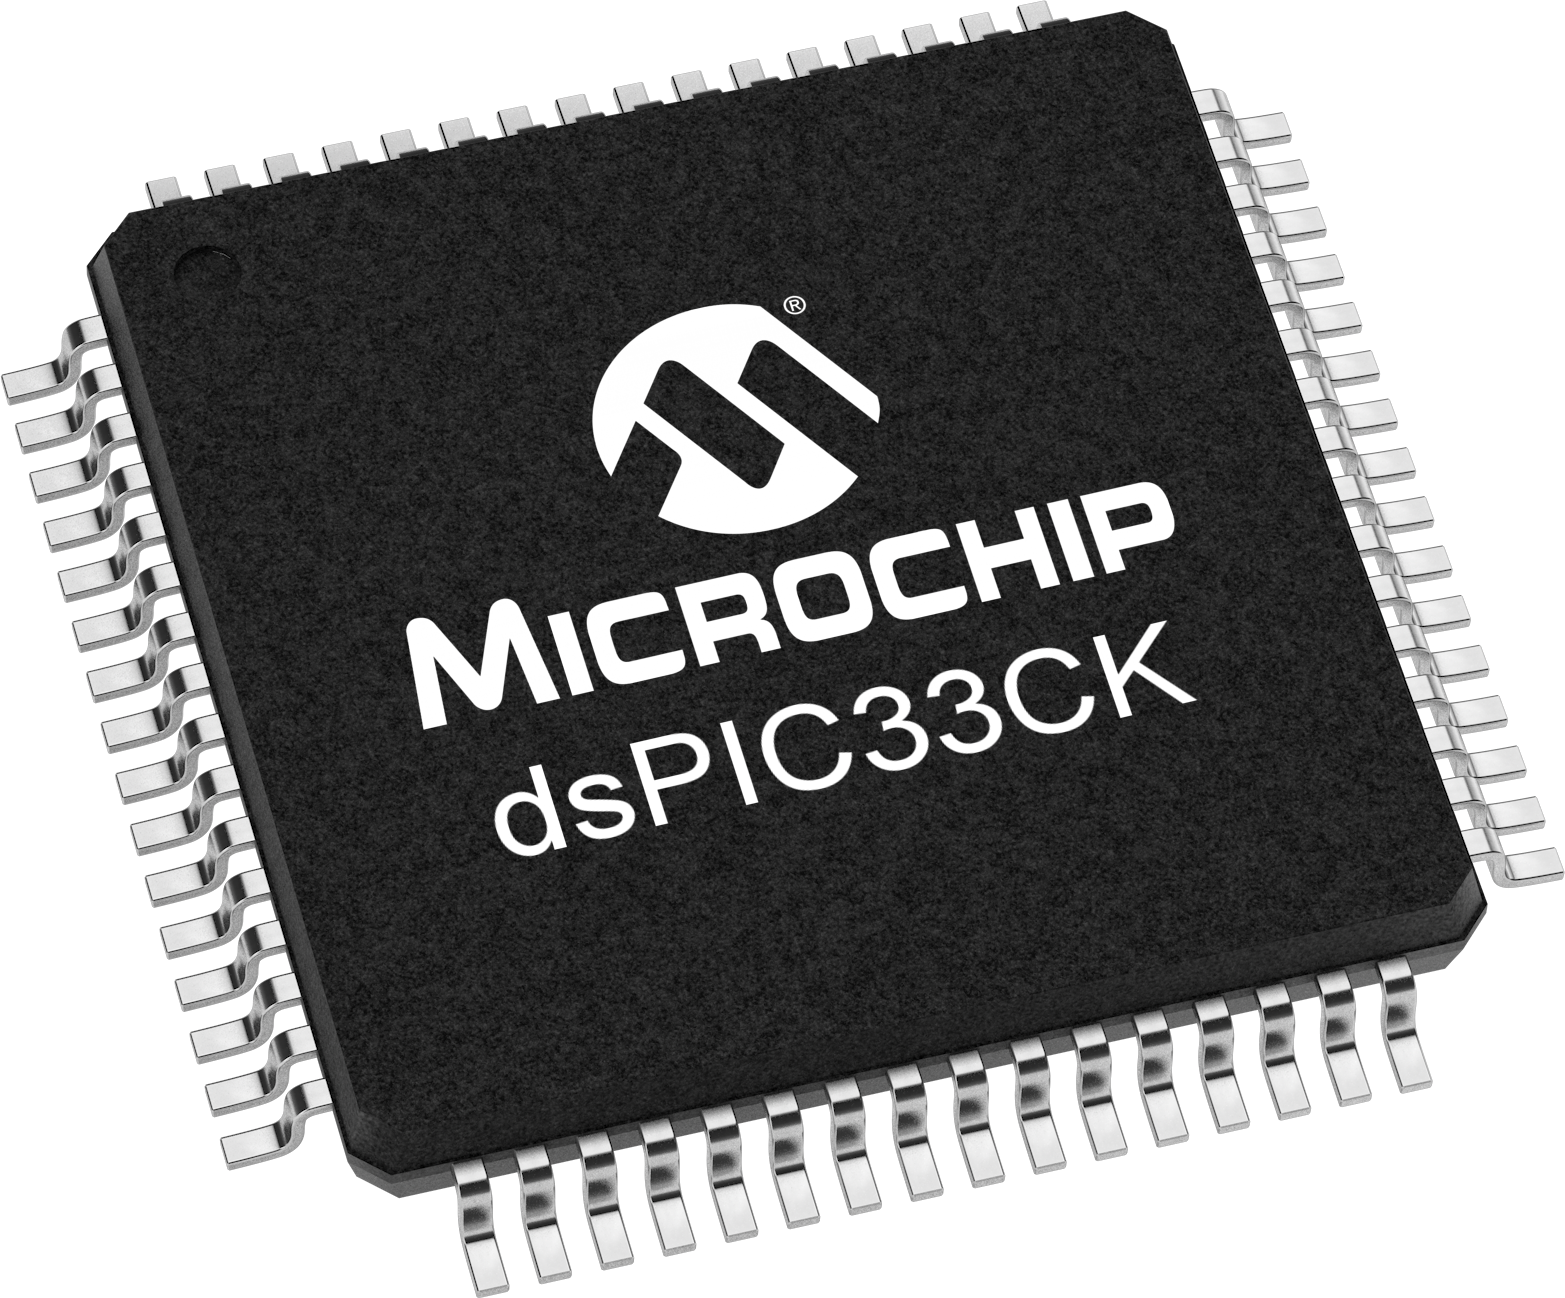 New Product Announcements Power Sources Manufacturers Association Dc Multi Chip Module Family System Designers Looking For Digital Signal Processing With The Design Simplicity Of A Microcontroller Mcu Can Now Utilize 16 Bit